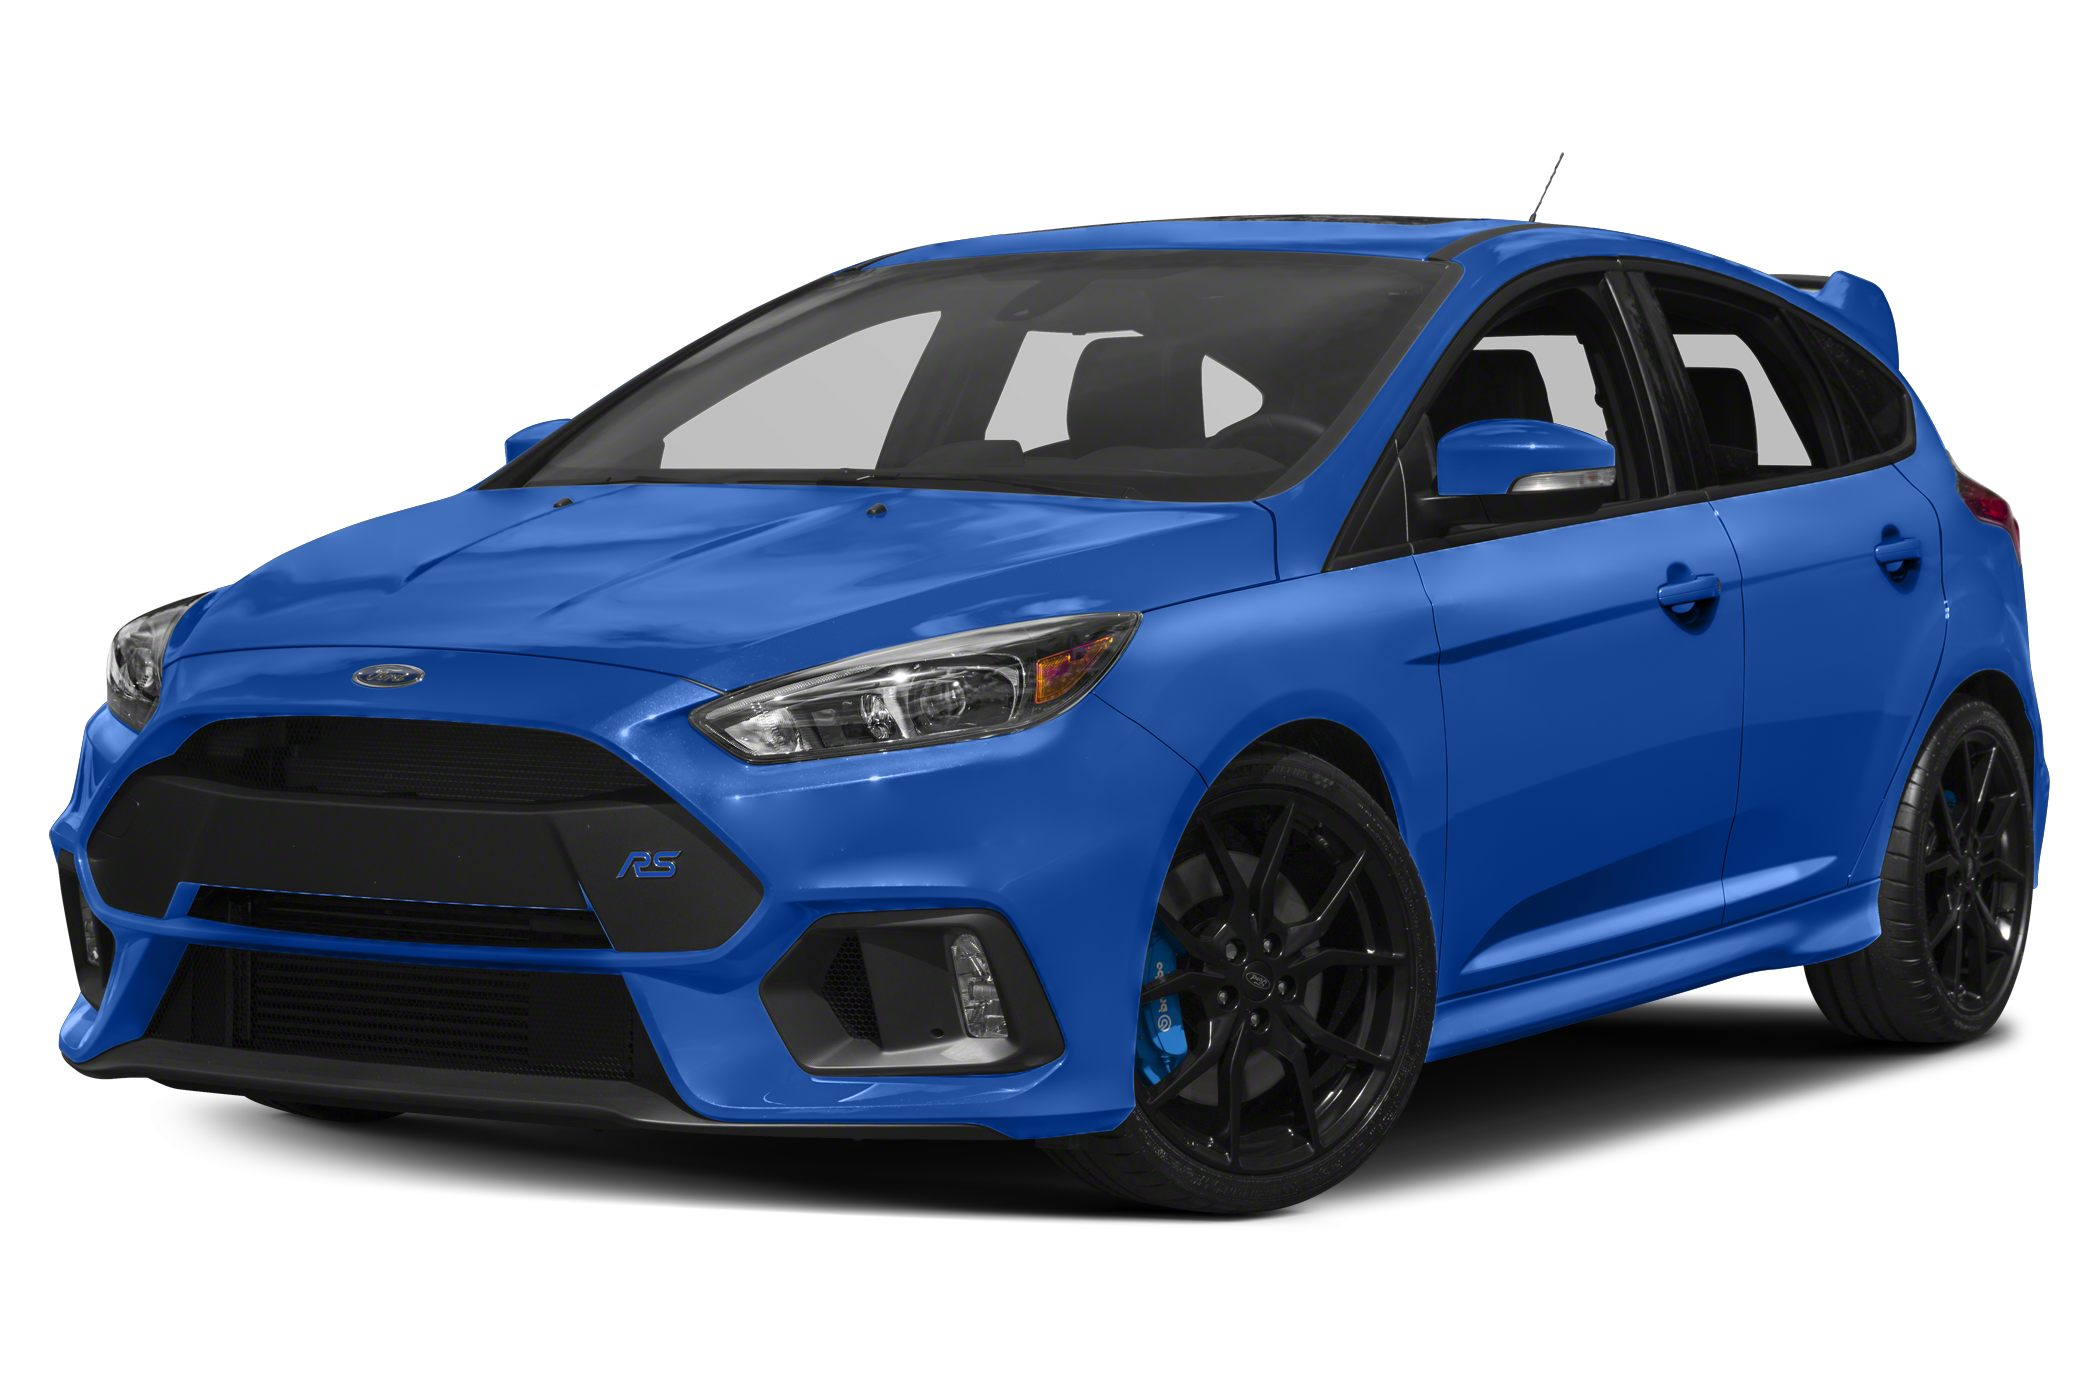 australian focus review price ford images australia all gizmodo rs